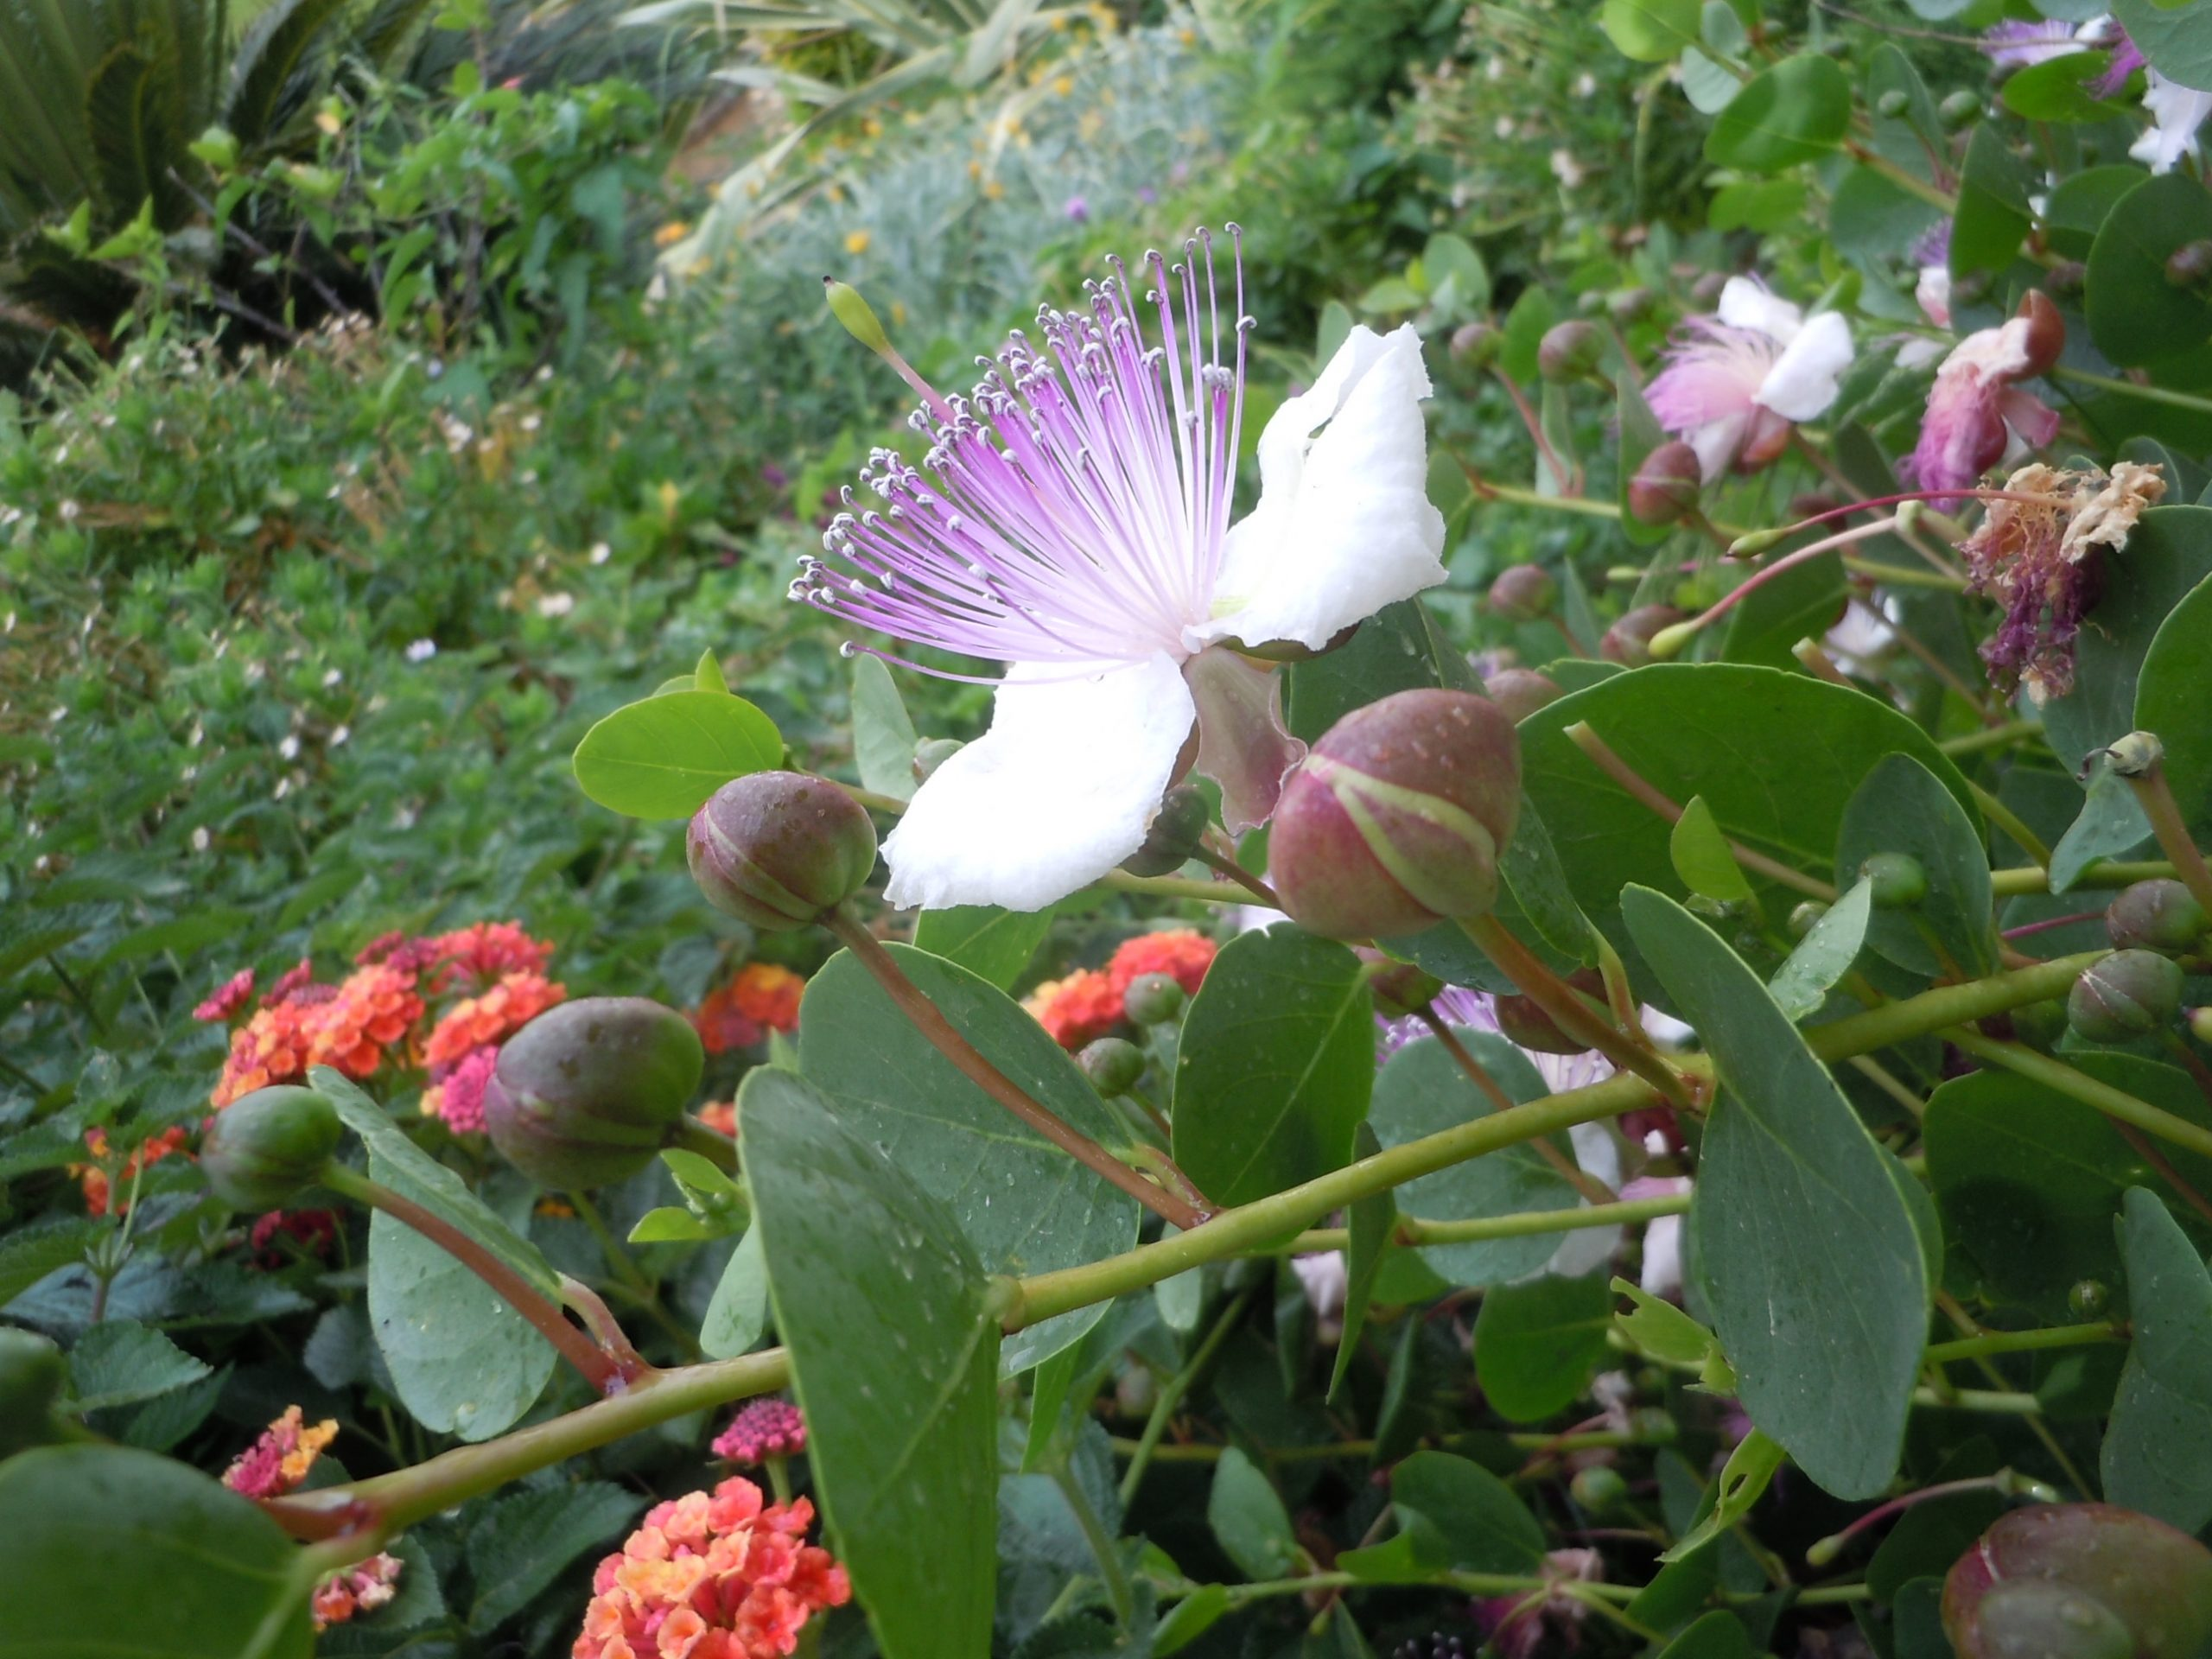 a caper flower. The flower buds are pickled to make the capers used in cooking